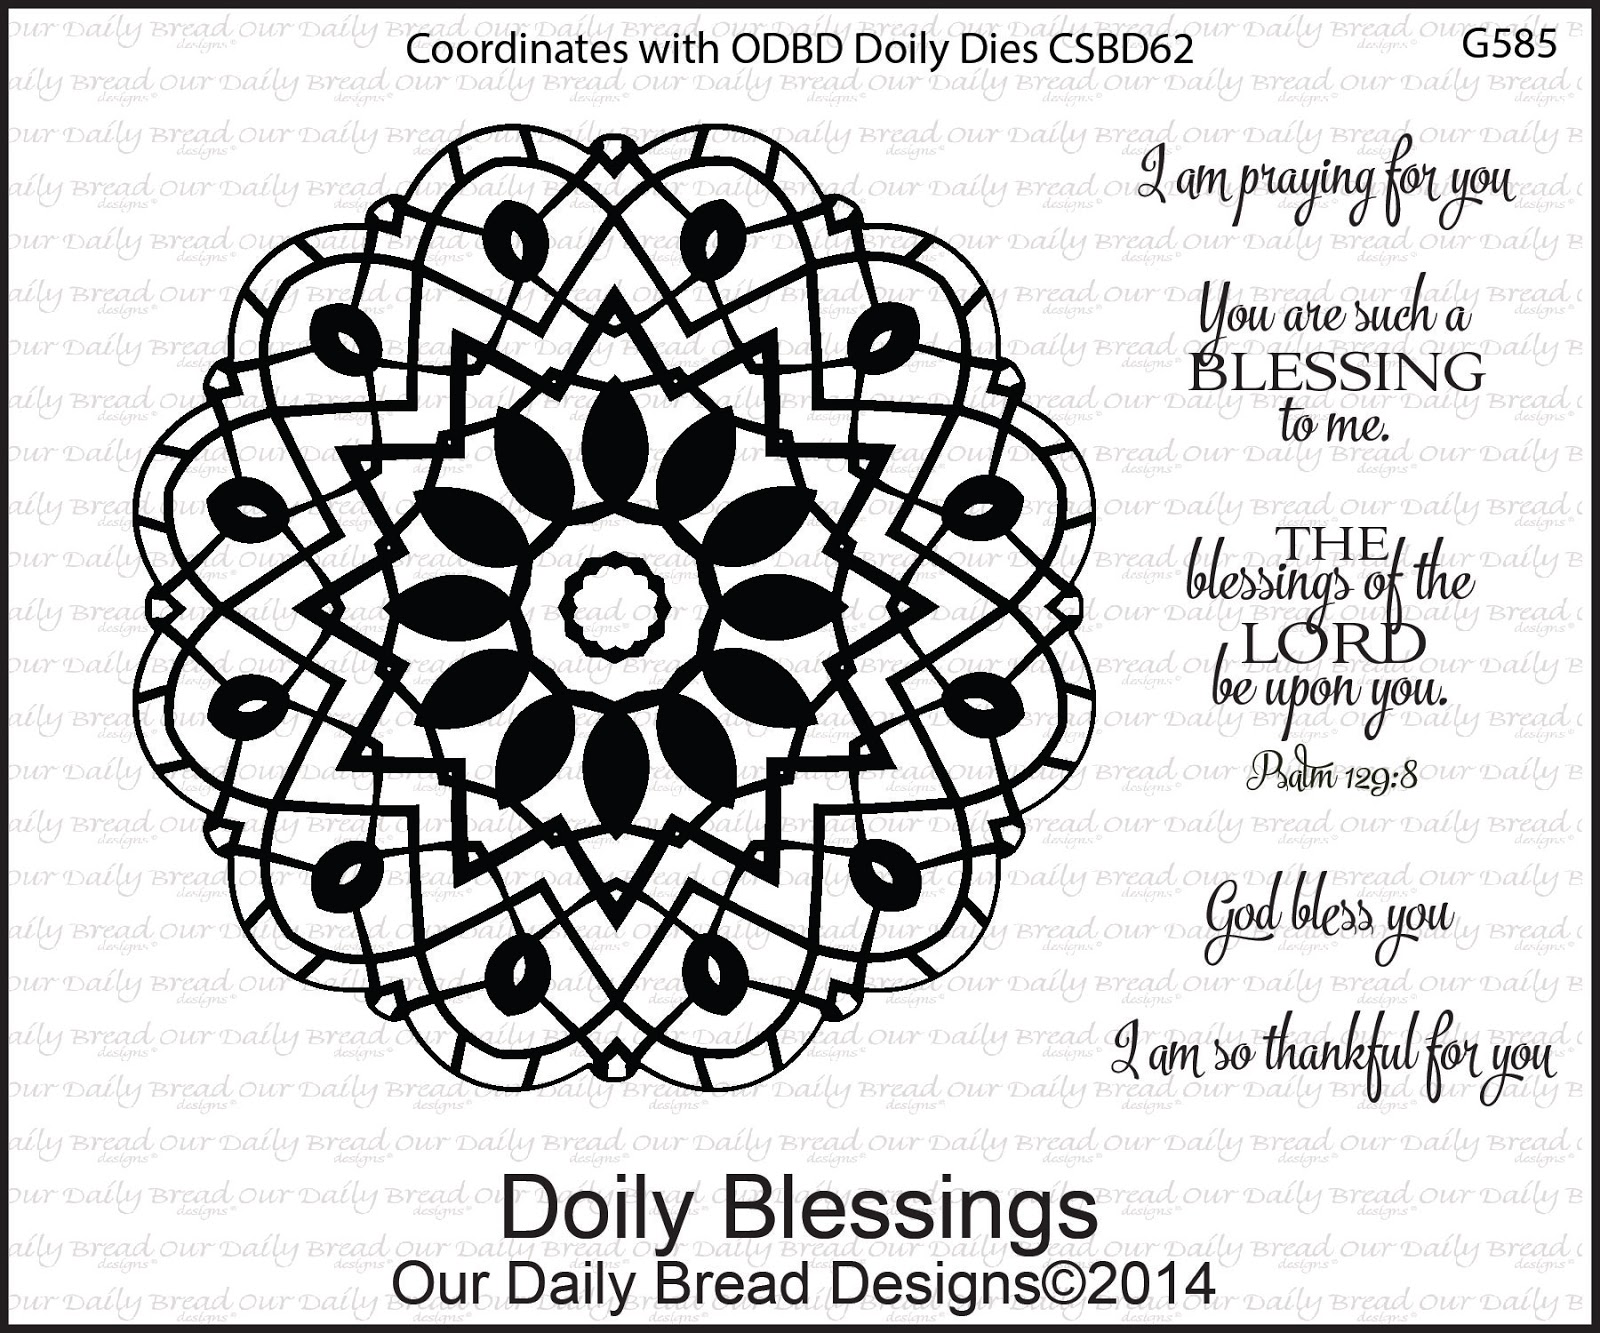 https://www.ourdailybreaddesigns.com/media/catalog/product/cache/1/image/9df78eab33525d08d6e5fb8d27136e95/d/o/doily_blessings_g585.jpg